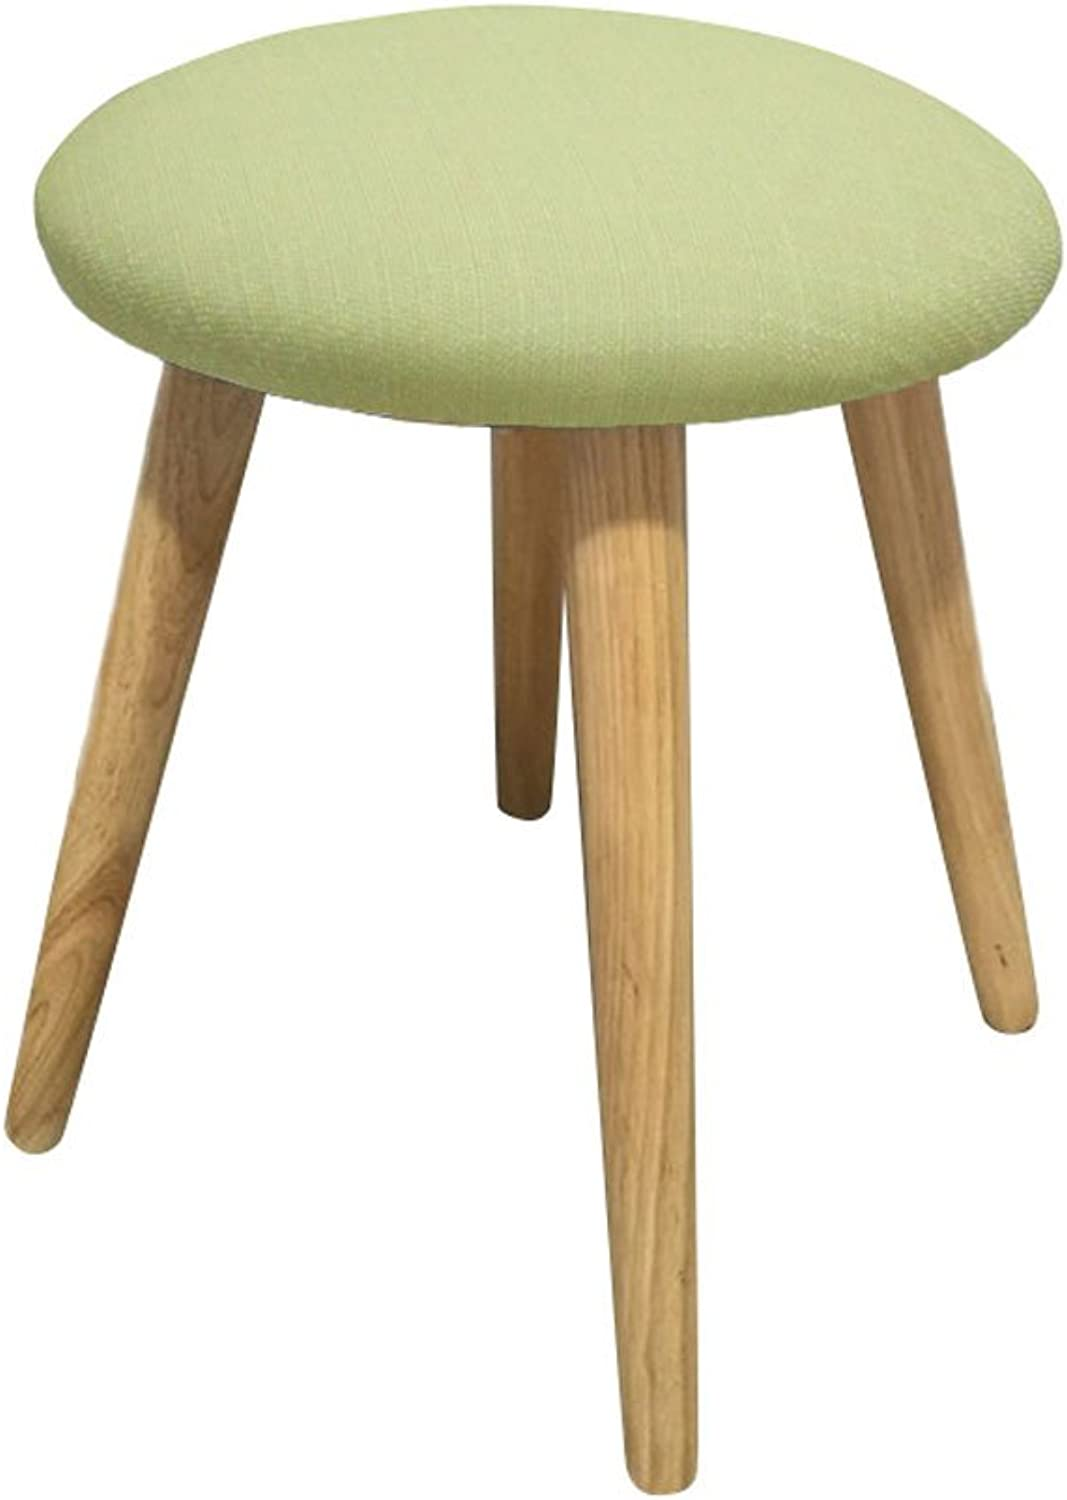 Japanese Small Stool Small Bench Fashion Stool Simple Change shoes Stool Solid Wood Stool Cloth Dining Stool Dressing Stool Low Stool 35 × 42 cm (color   Green)